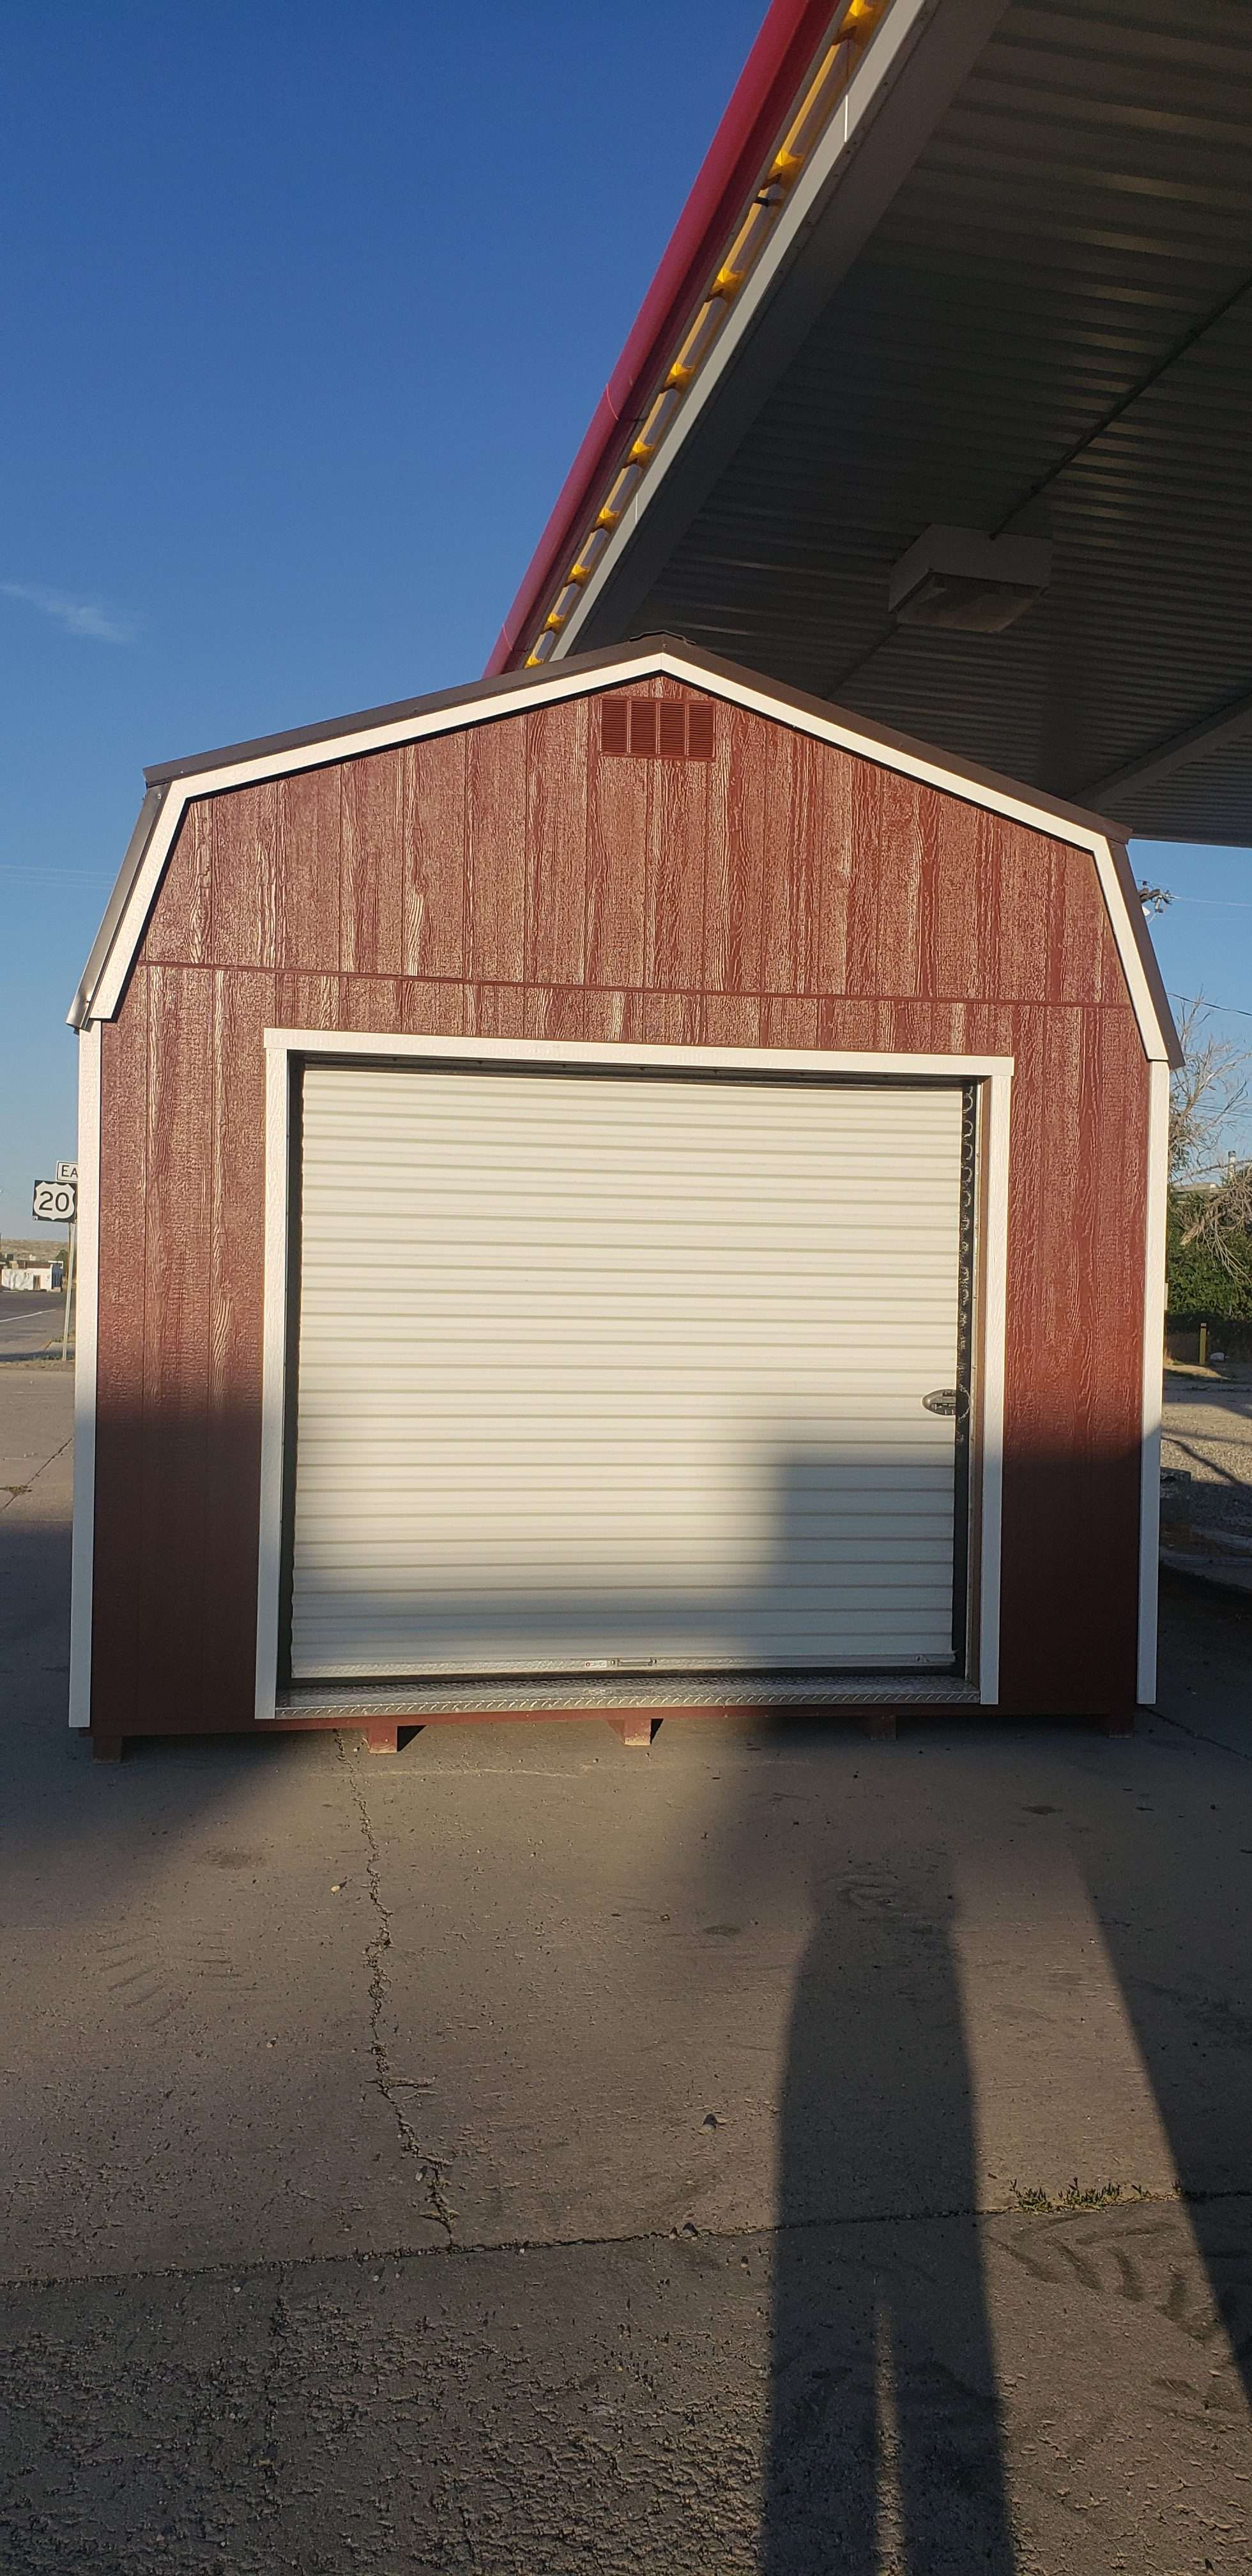 HI-SIDE GARAGE  12 x 30